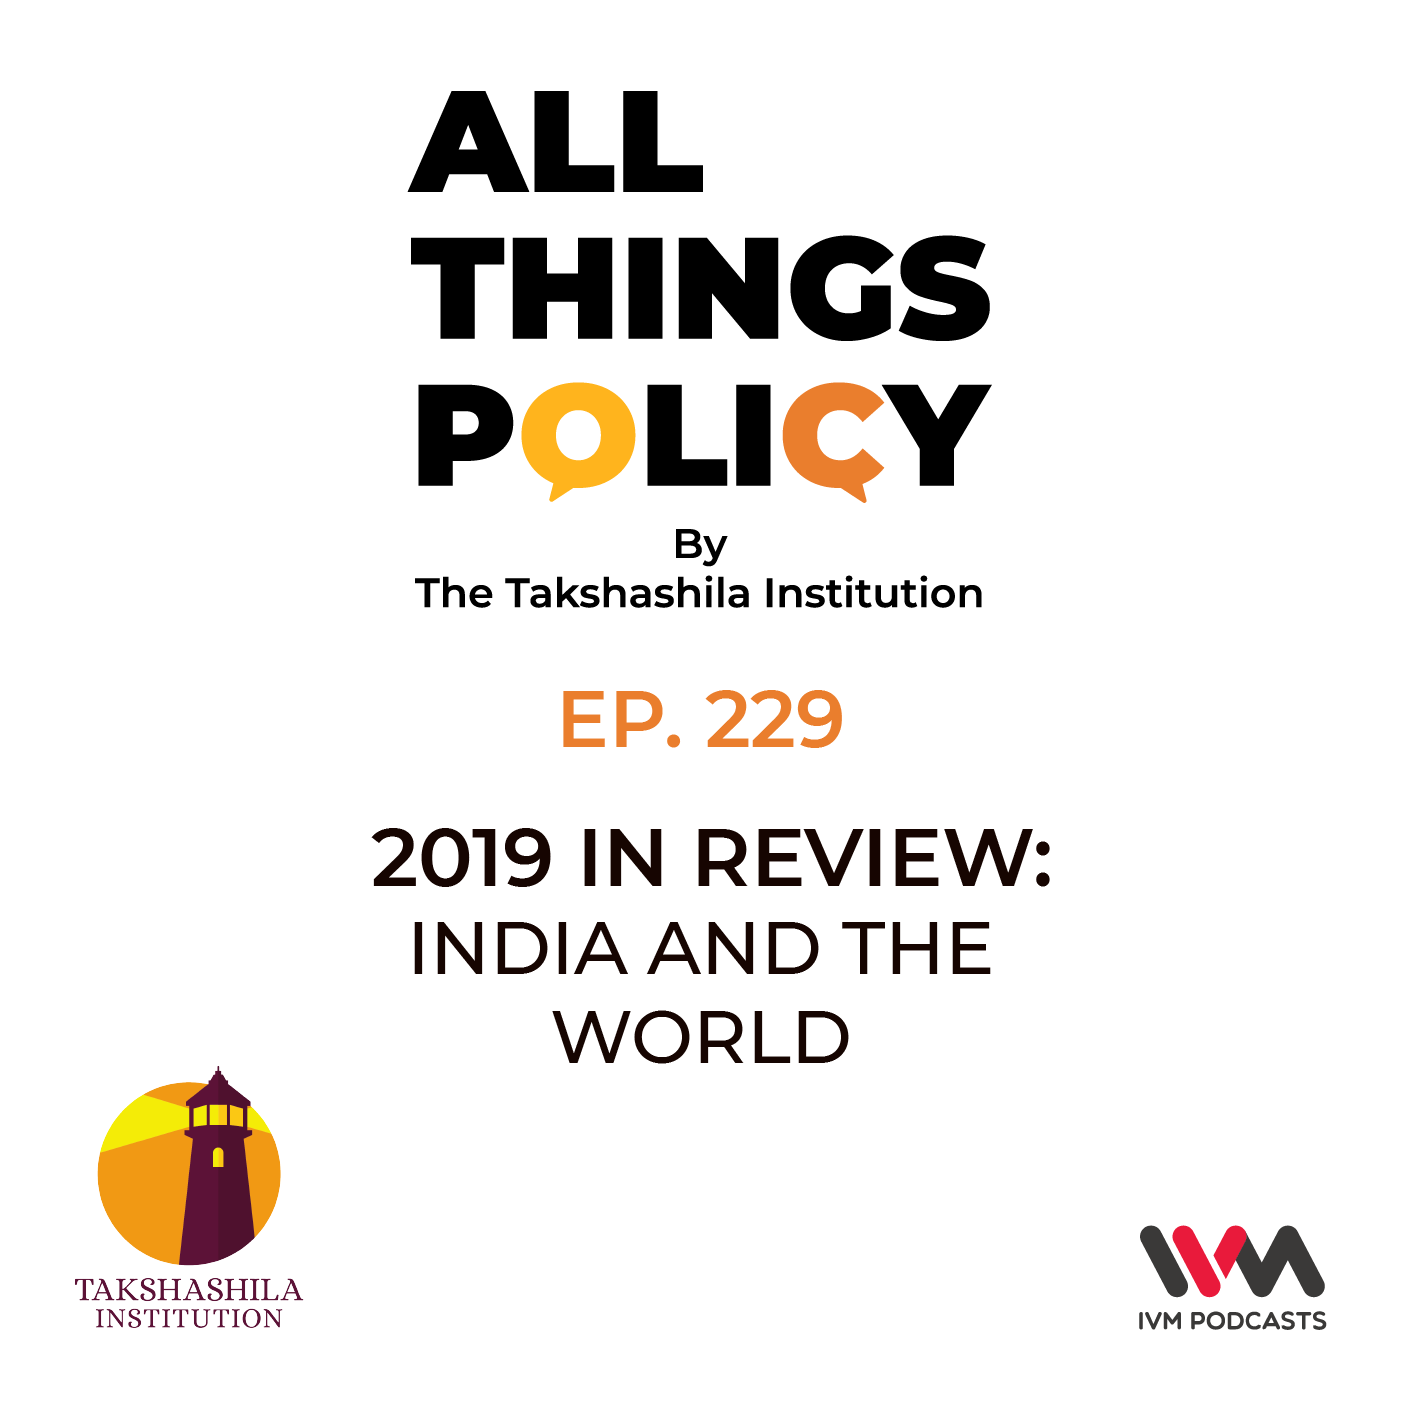 Ep. 229: 2019 in Review: India and the World